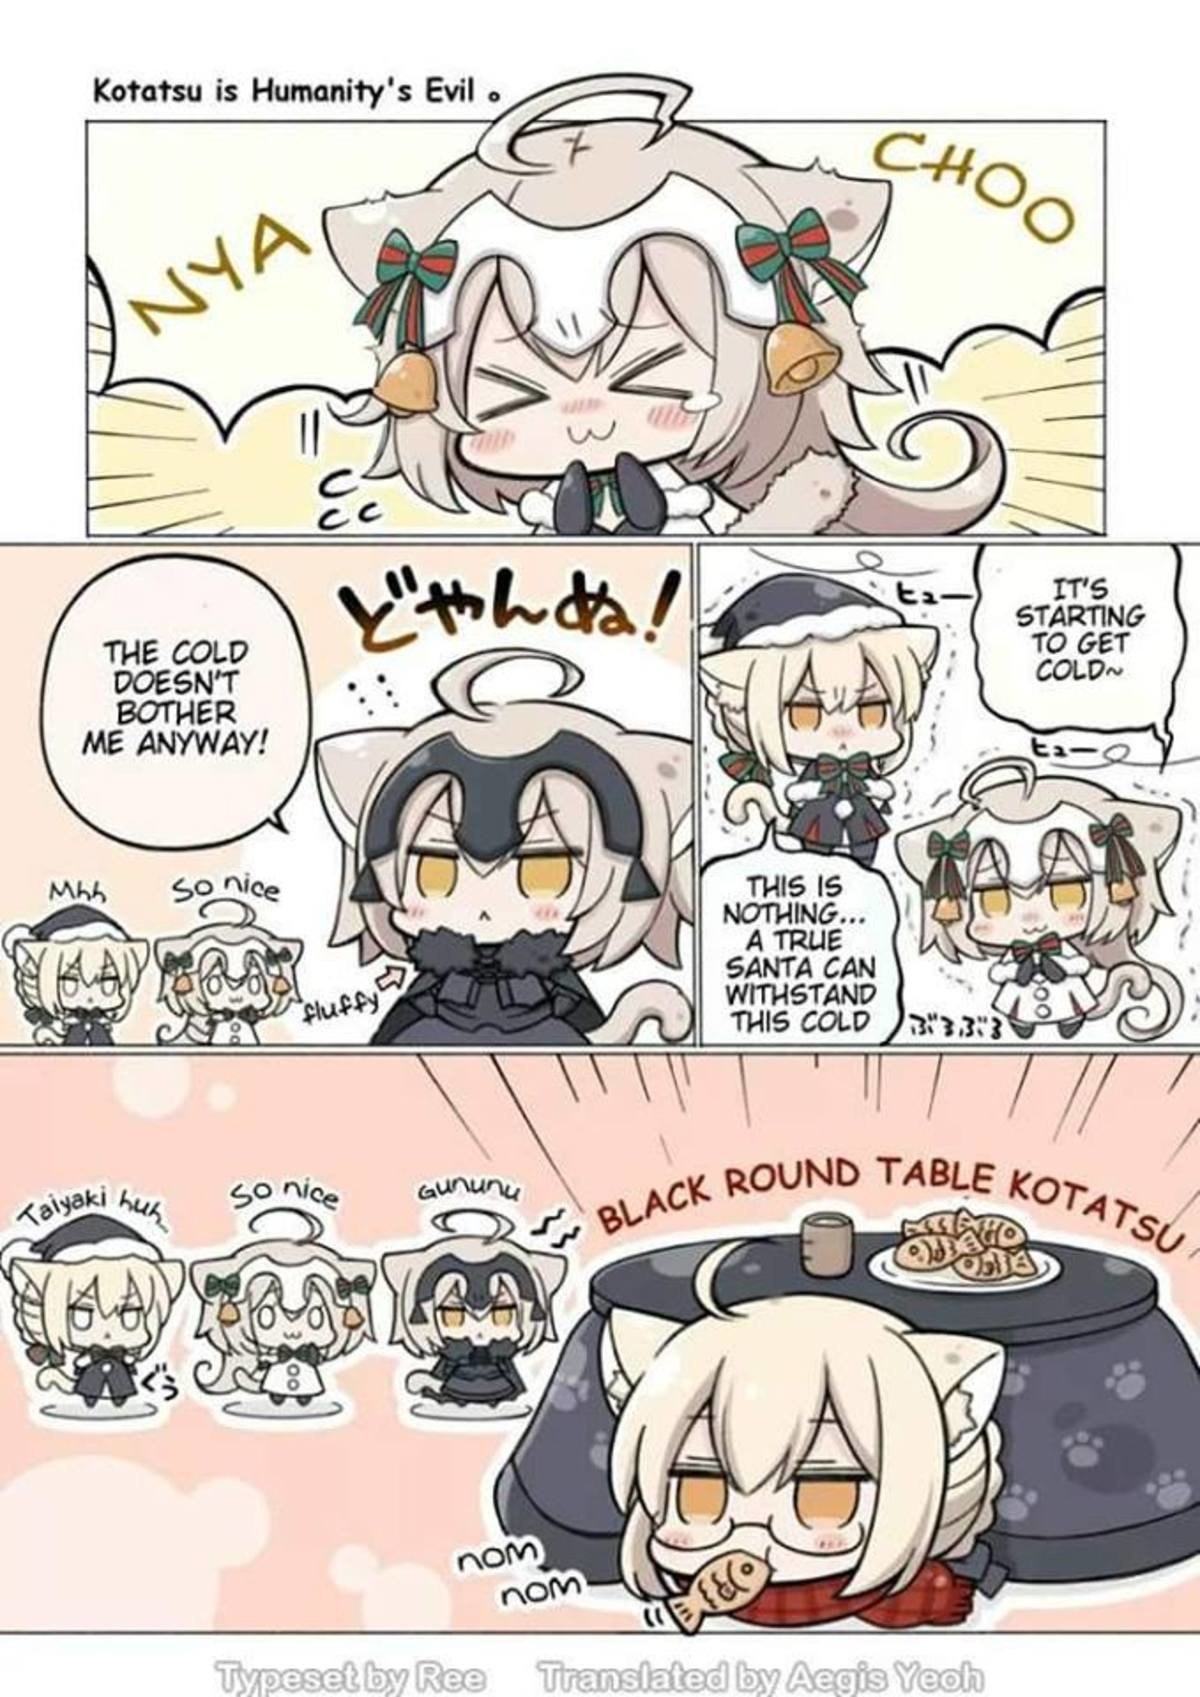 Smol Kitty Alters. join list: Lewds4DHeart (1592 subs)Mention History join list:. At some point, the shivers stop and you let the cold in. You move slower, but at least you're not miserable.